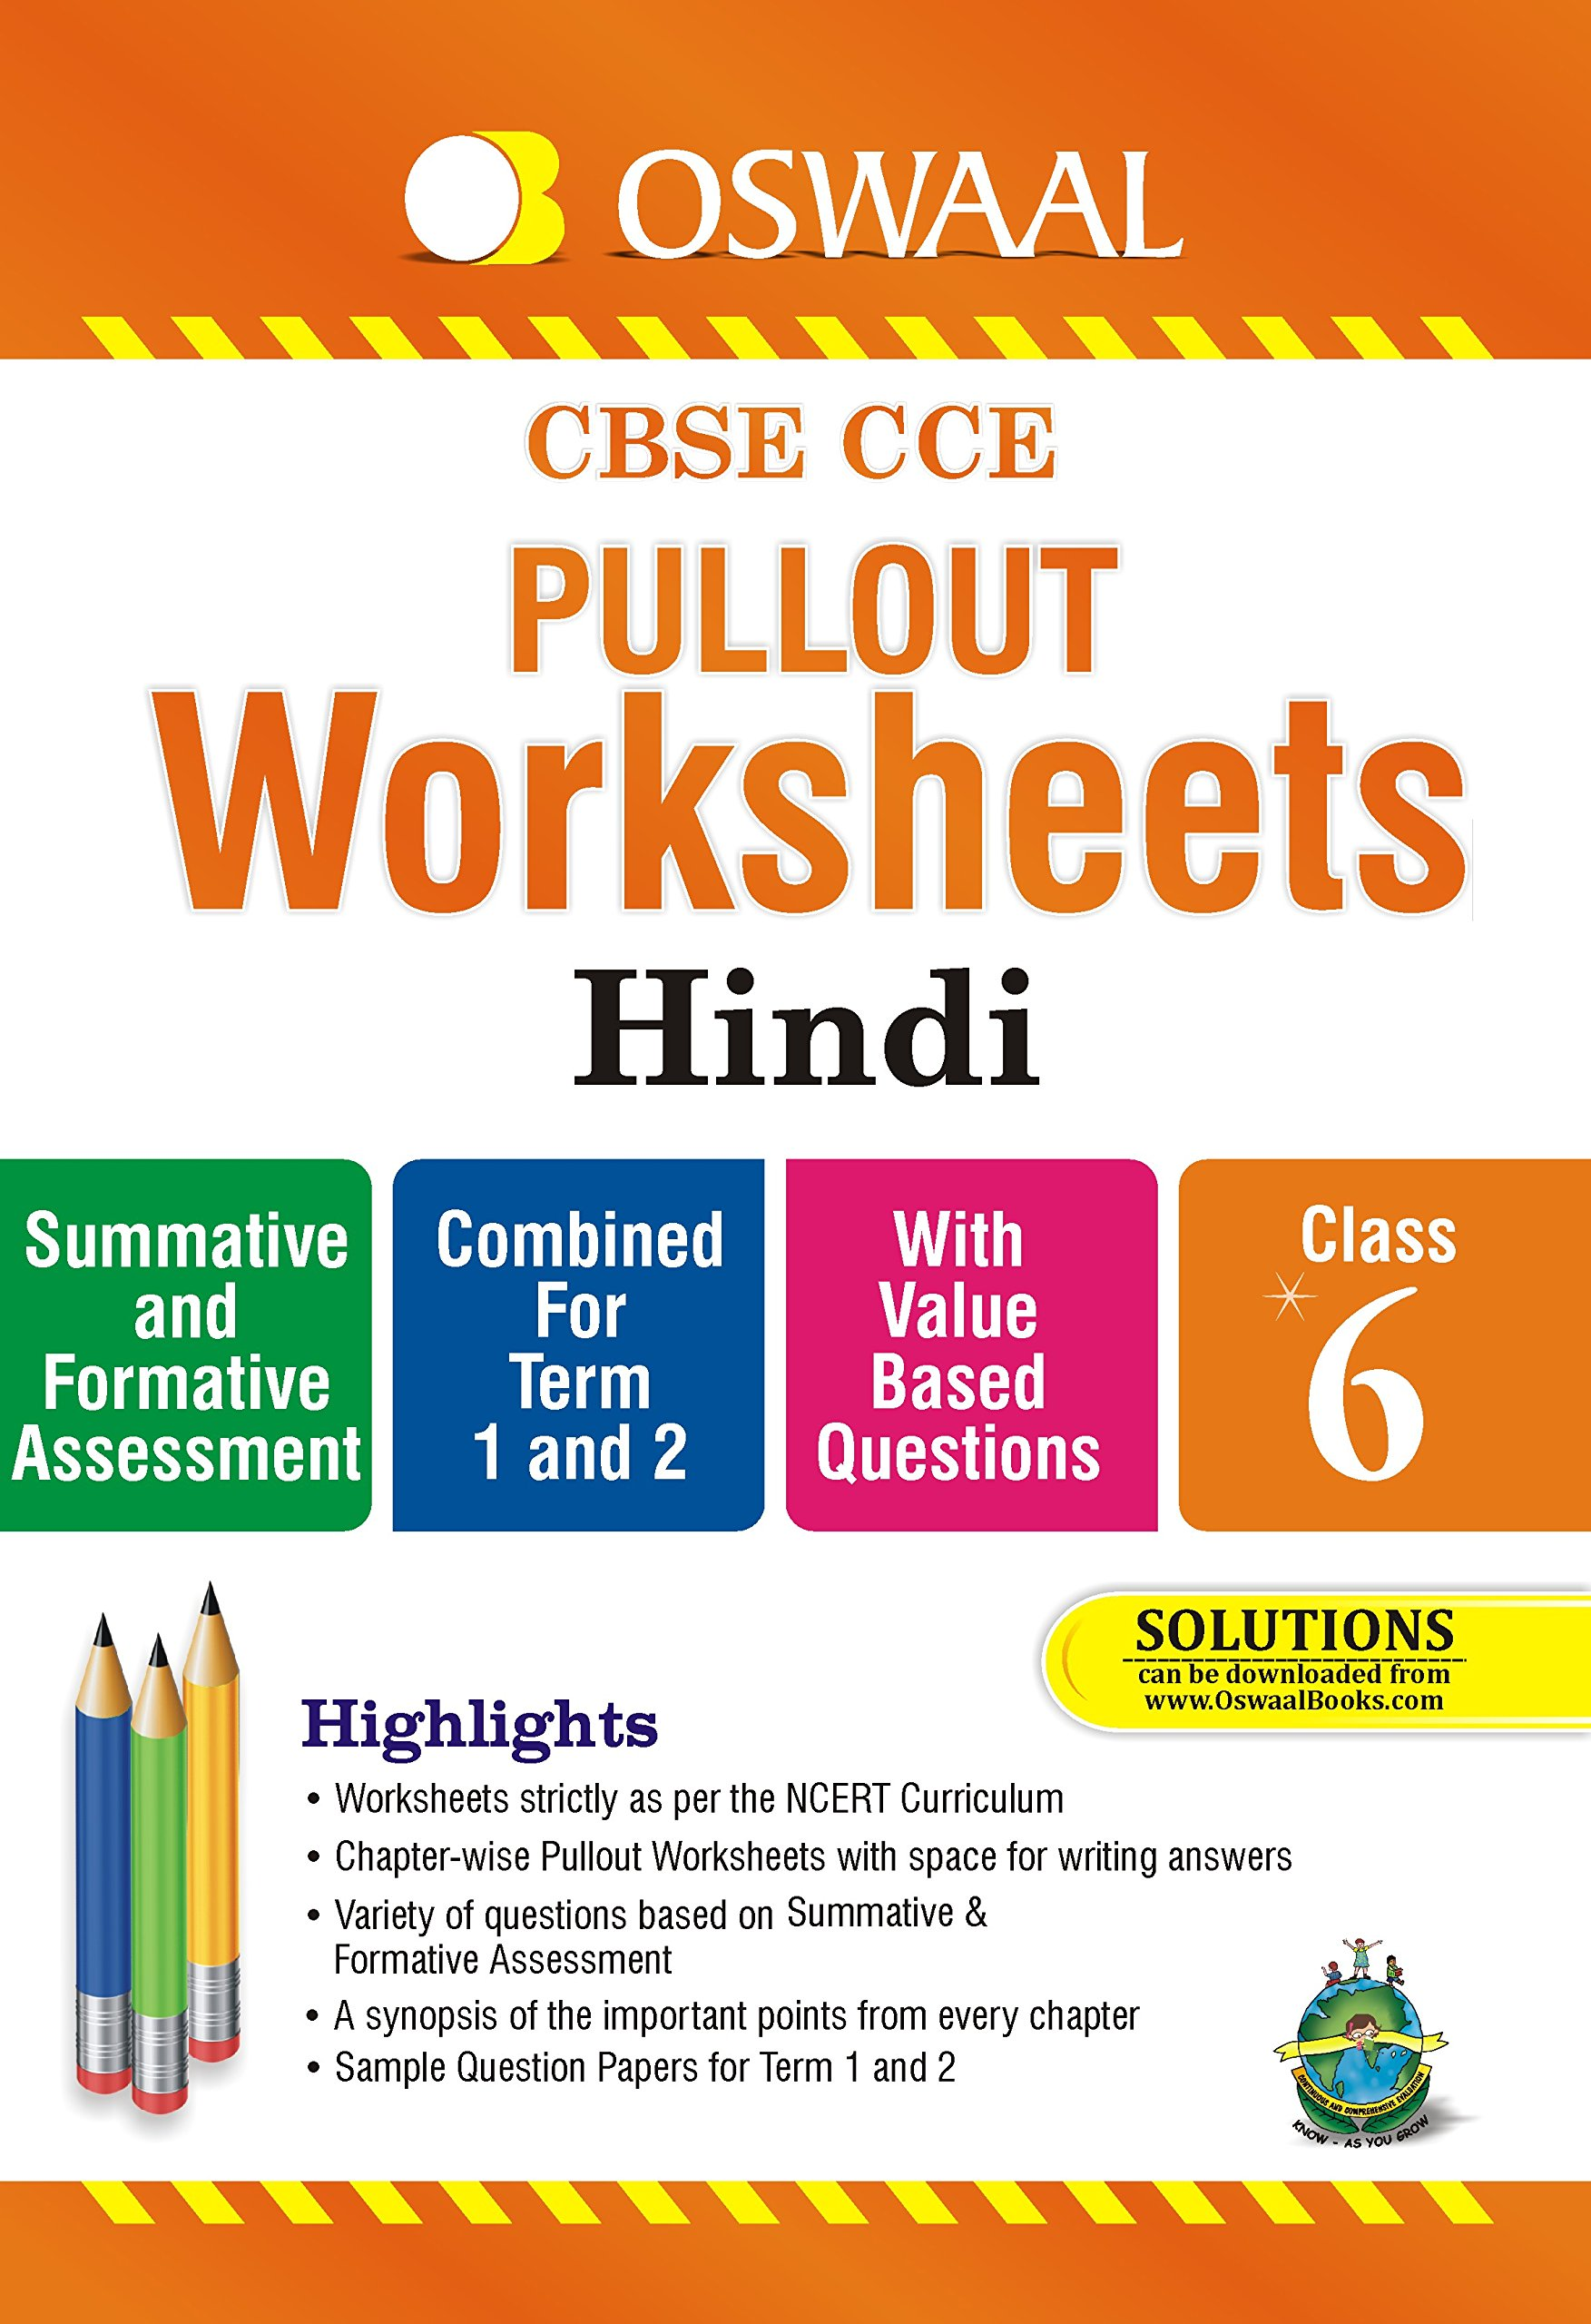 Oswaal Cbse Cce Pullout Worksheets Hindi For Class 6 Amazon